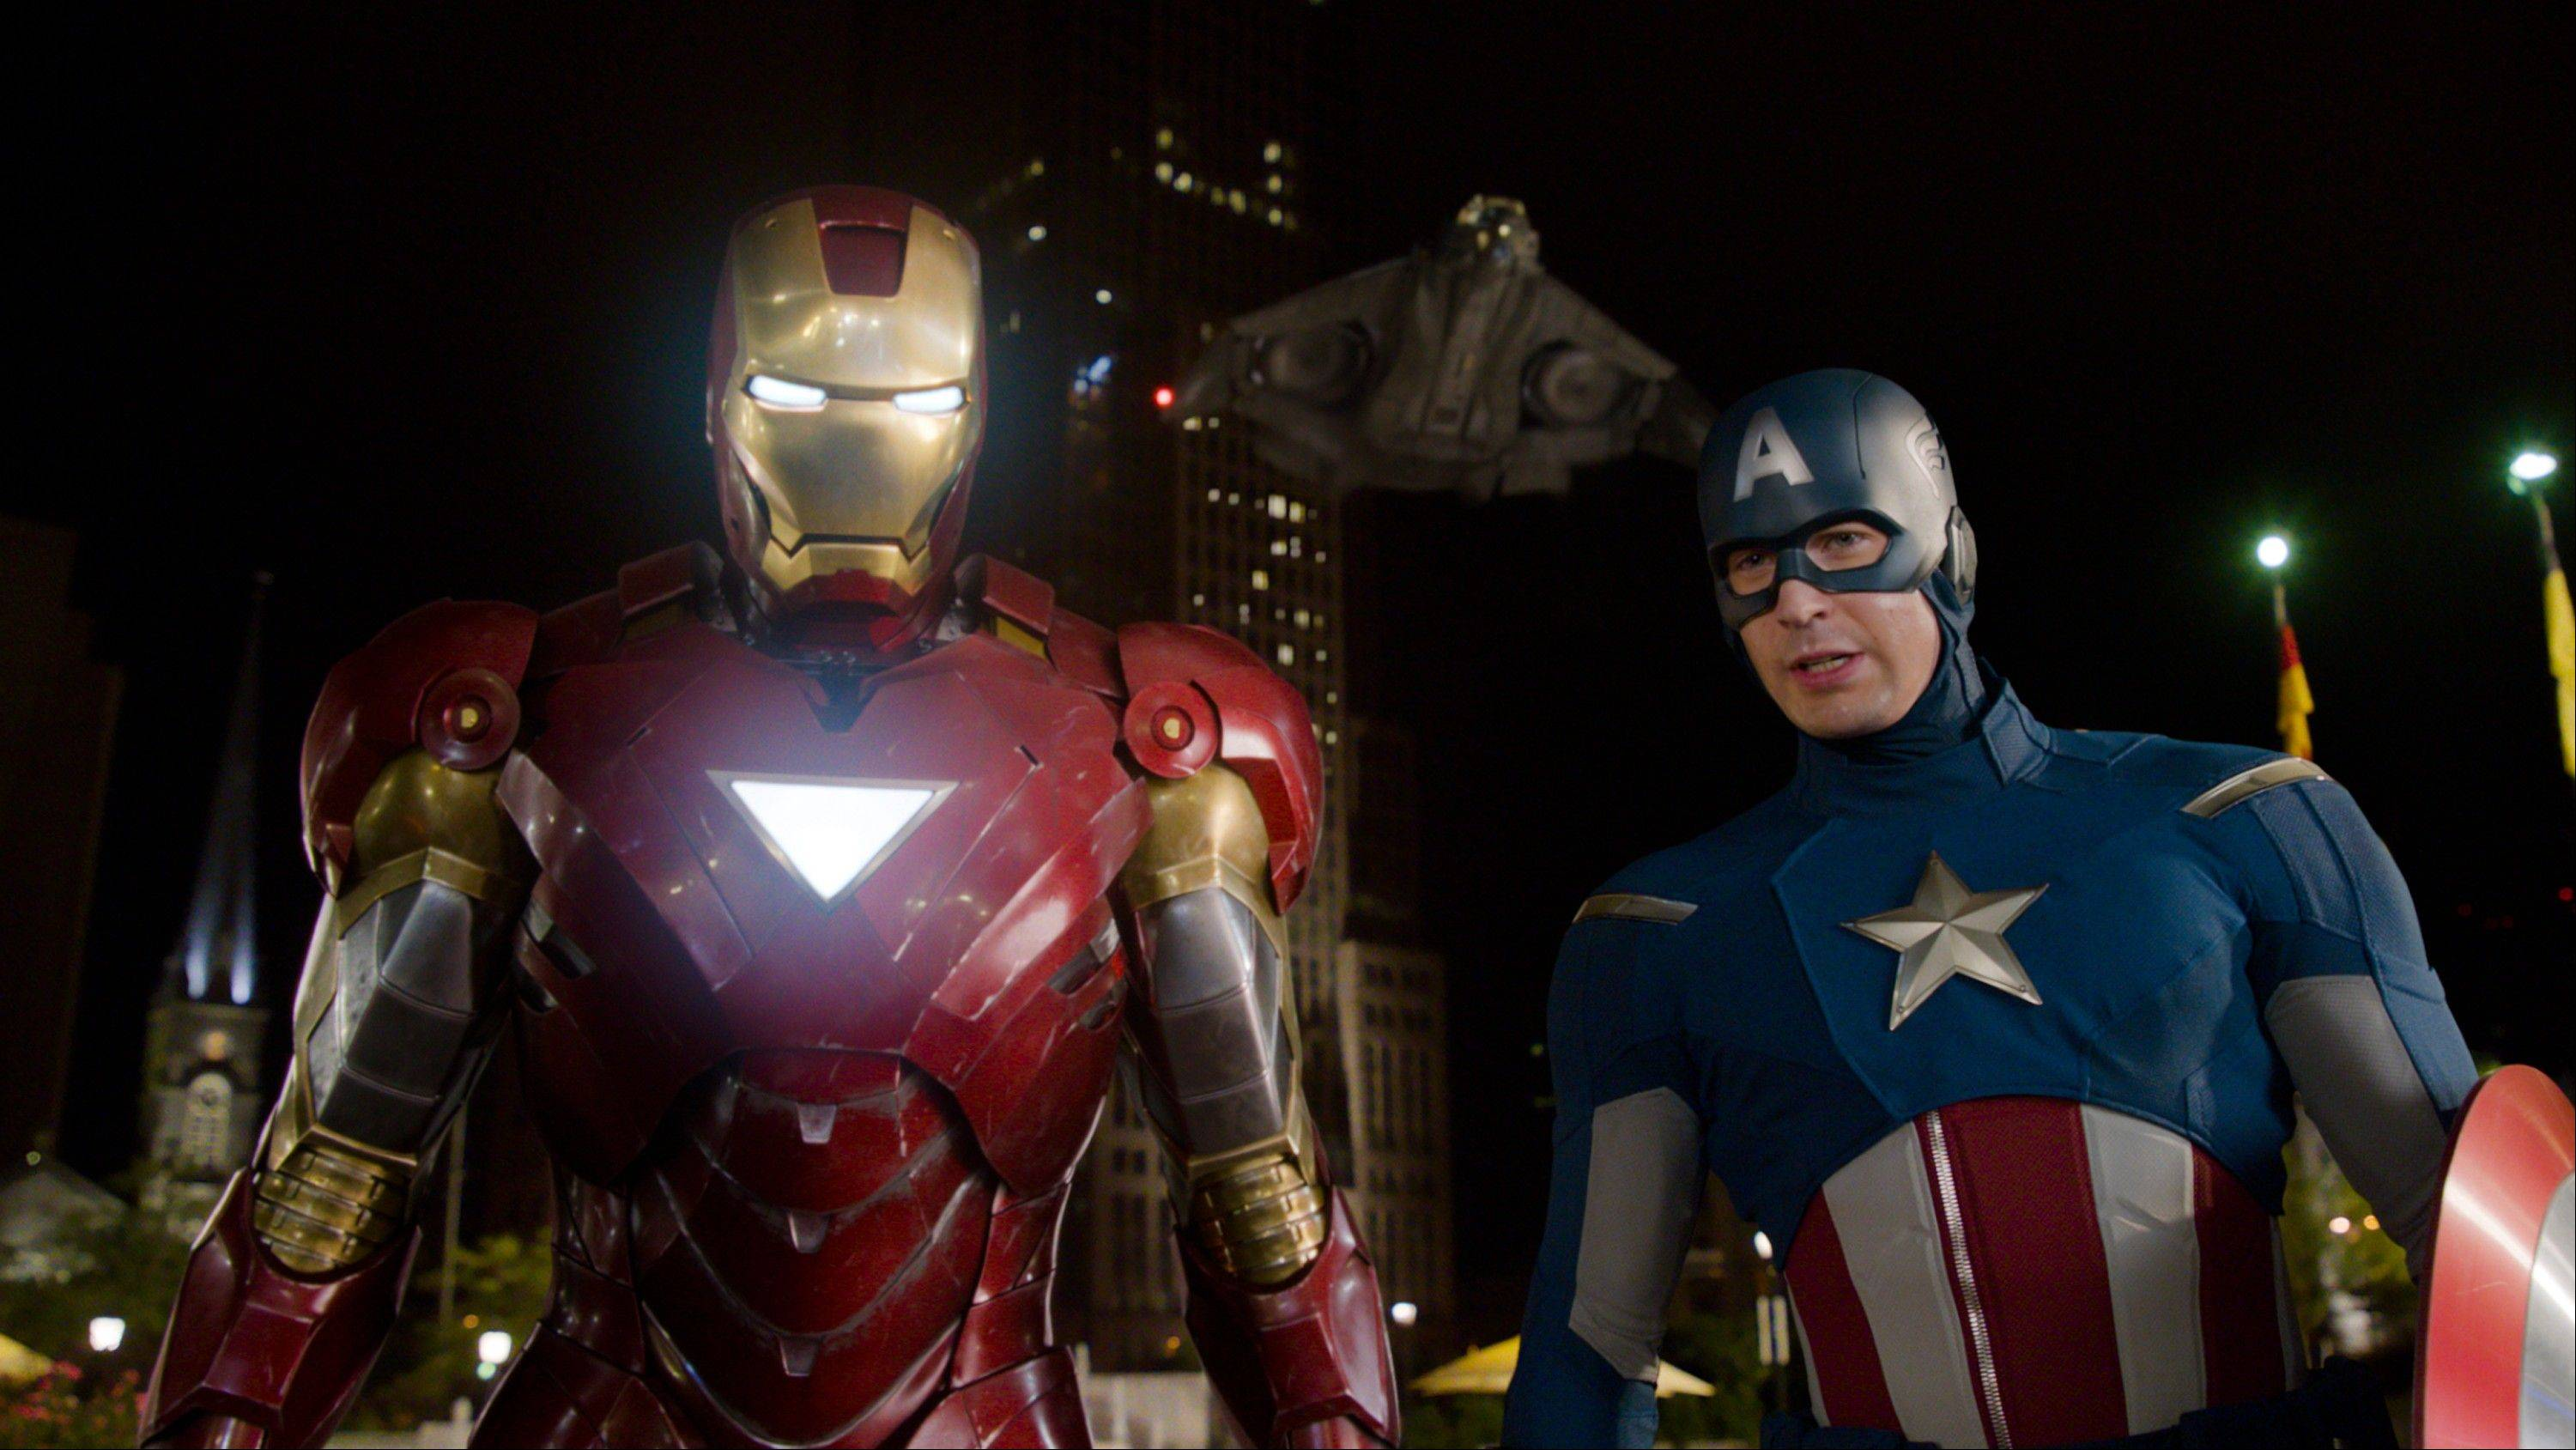 'Avengers' avenges earlier mediocre Marvel movies